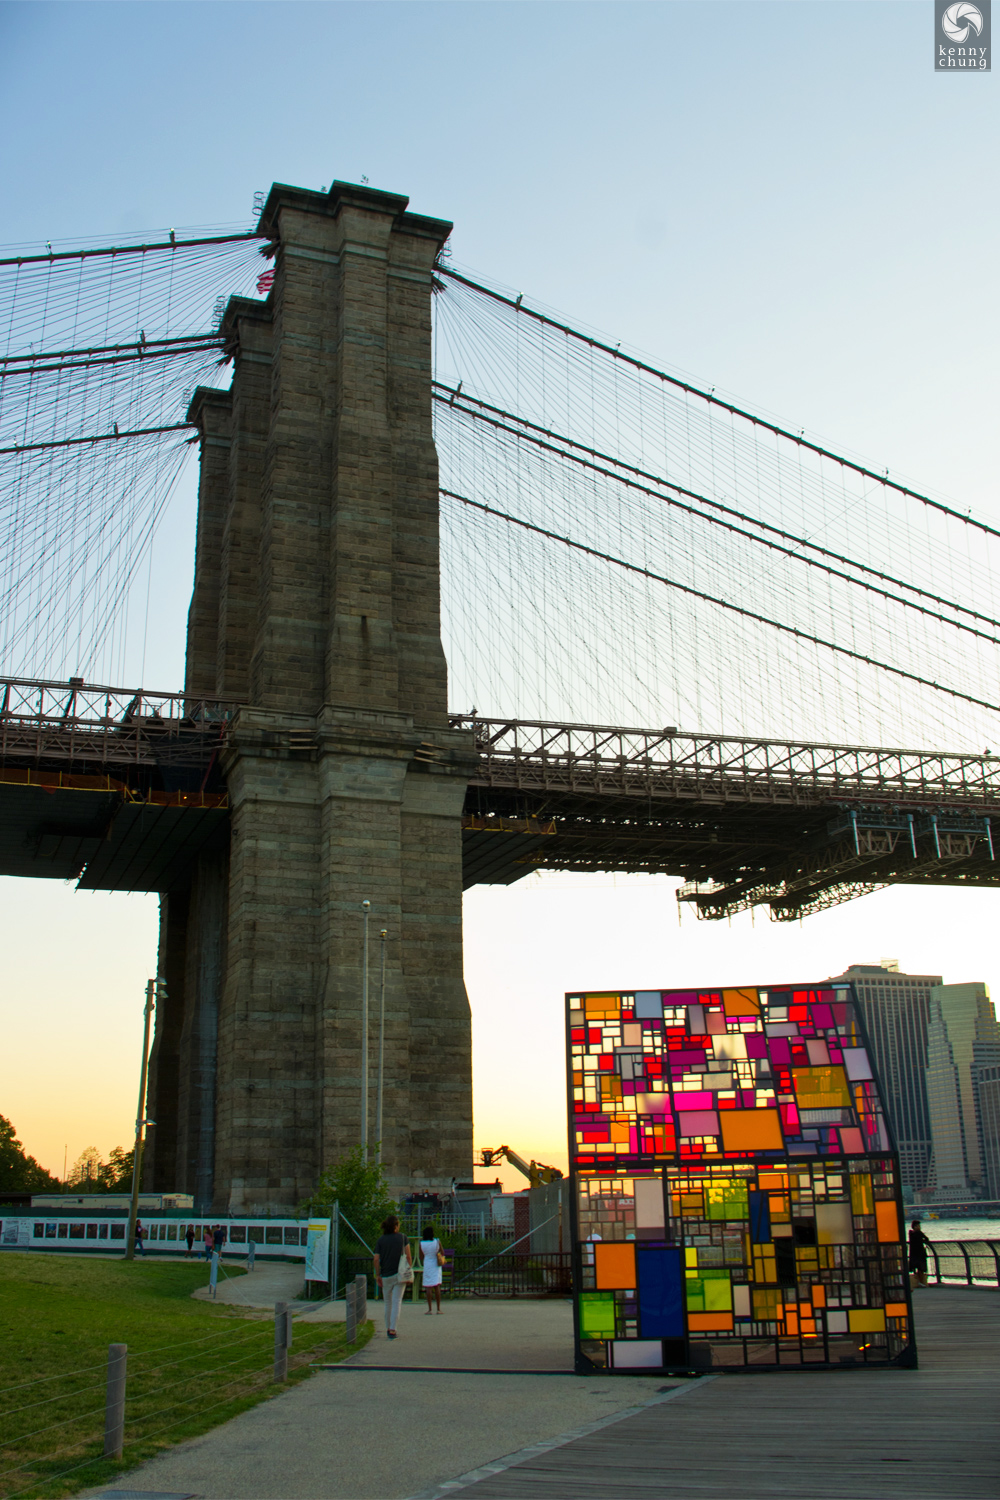 Tom Fruin's Stained Glass House at Brooklyn Bridge Park